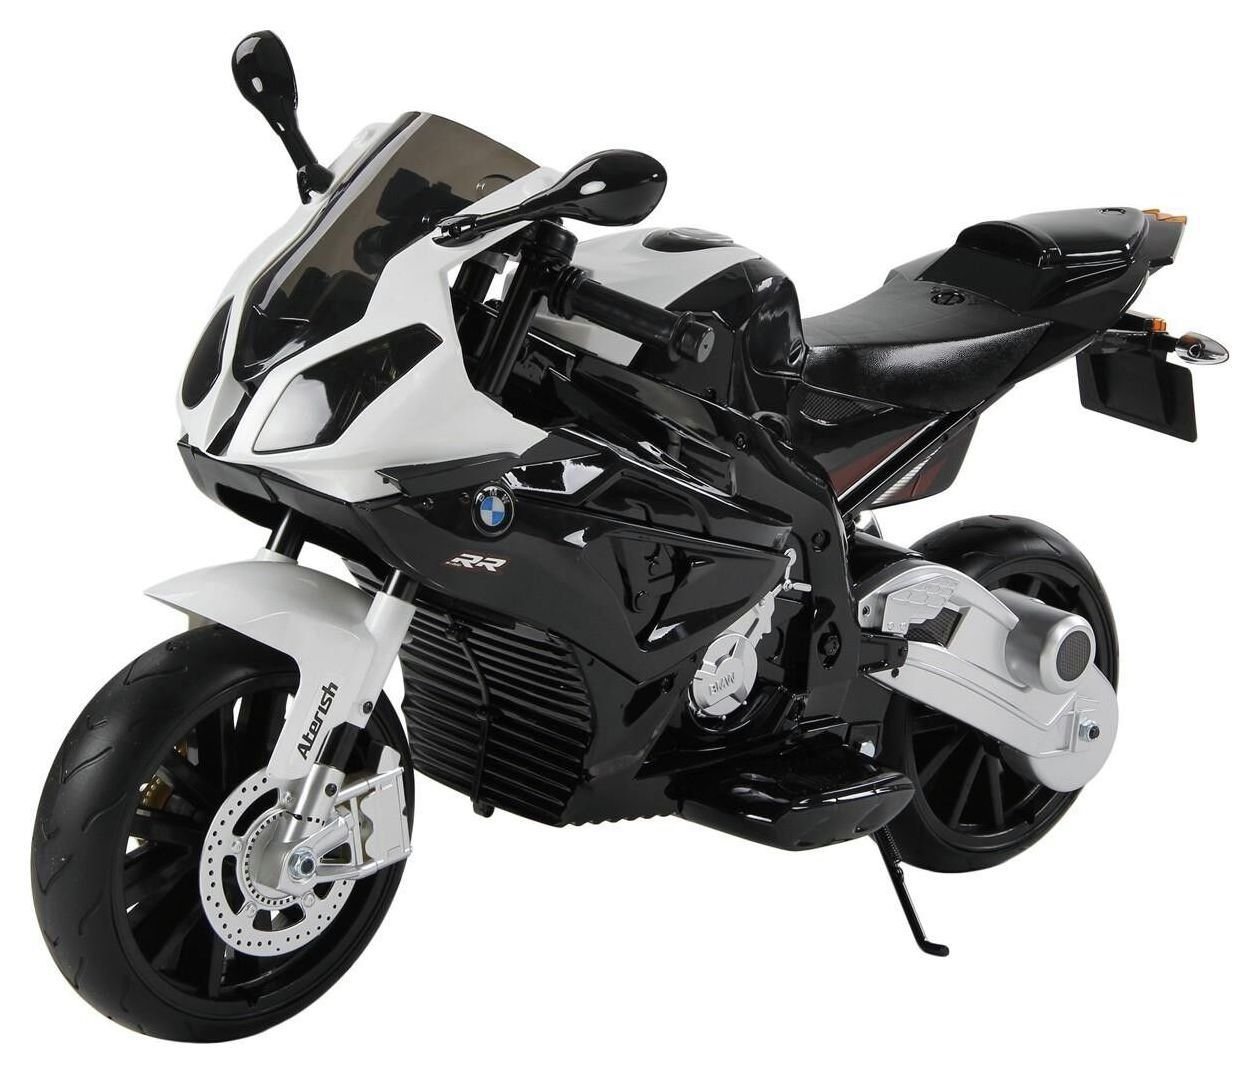 BMW Motorcycle Ride On - Black.